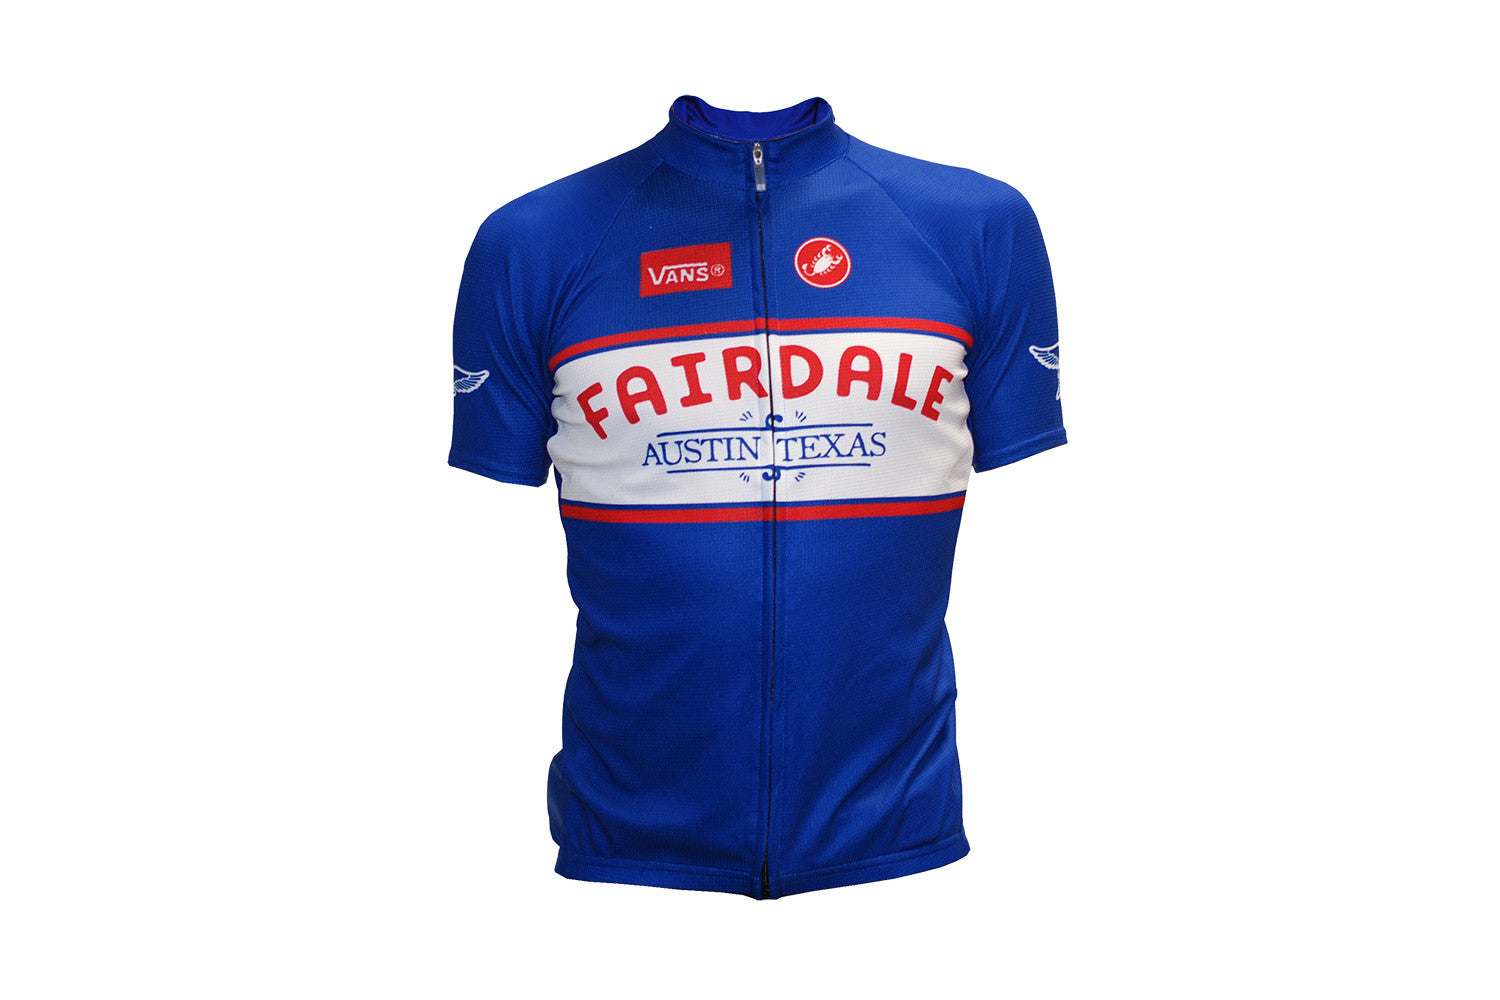 Fairdale Team Cycling Jersey